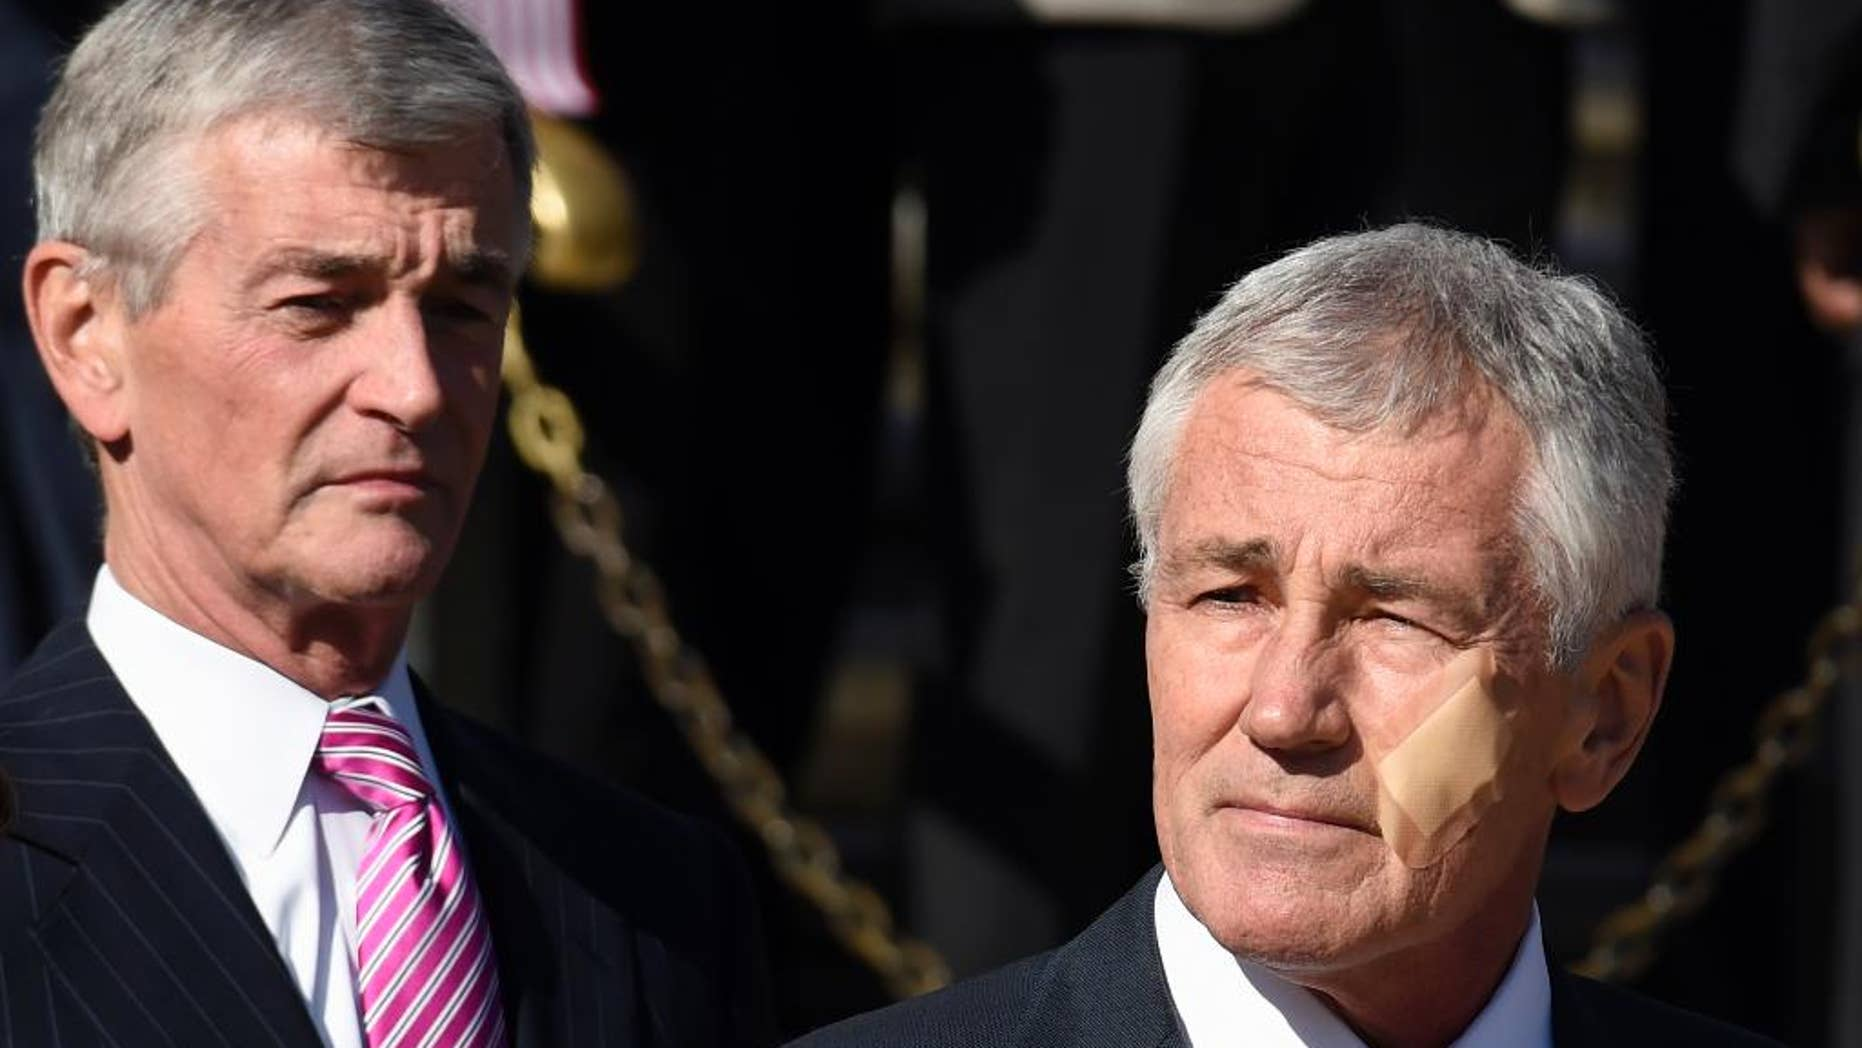 Defense Secretary Chuck Hagel, right, and Army Secretary John McHugh attend a wreath laying ceremony at the Tomb of the Unknowns, Tuesday, Nov. 11, 2014, at Arlington National Cemetery in Arlington, Va. in honor of Veterans Day. Hagel sports a bandage on his cheek after a minor kitchen mishap needing no stitches. (AP Photo/Susan Walsh)